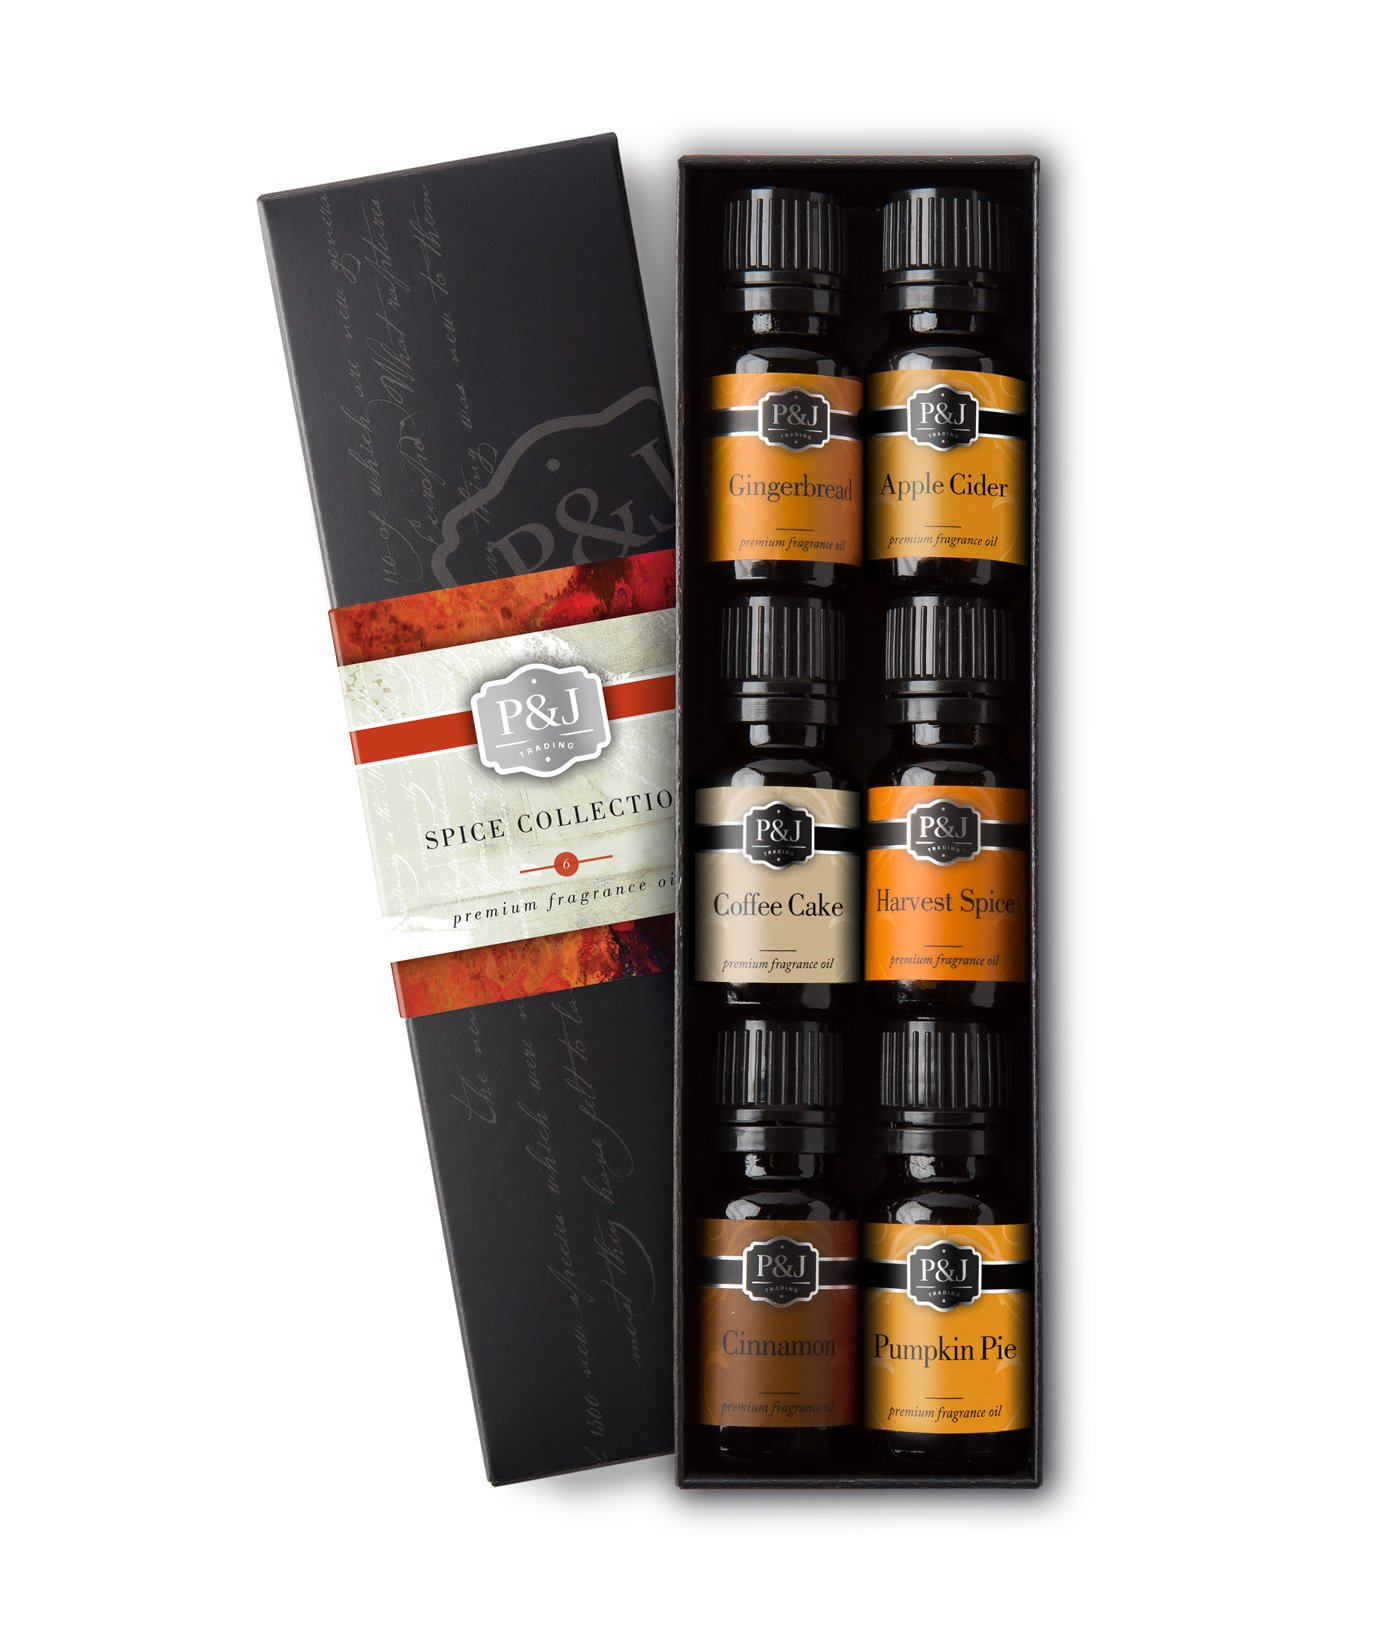 P&J Trading Spice Set of 6 Premium Grade Fragrance Oils - Cinnamon, Harvest Spice, Apple Cider, Coffee Cake, Gingerbread, Pumpkin Pie - 10ml by P&J Trading